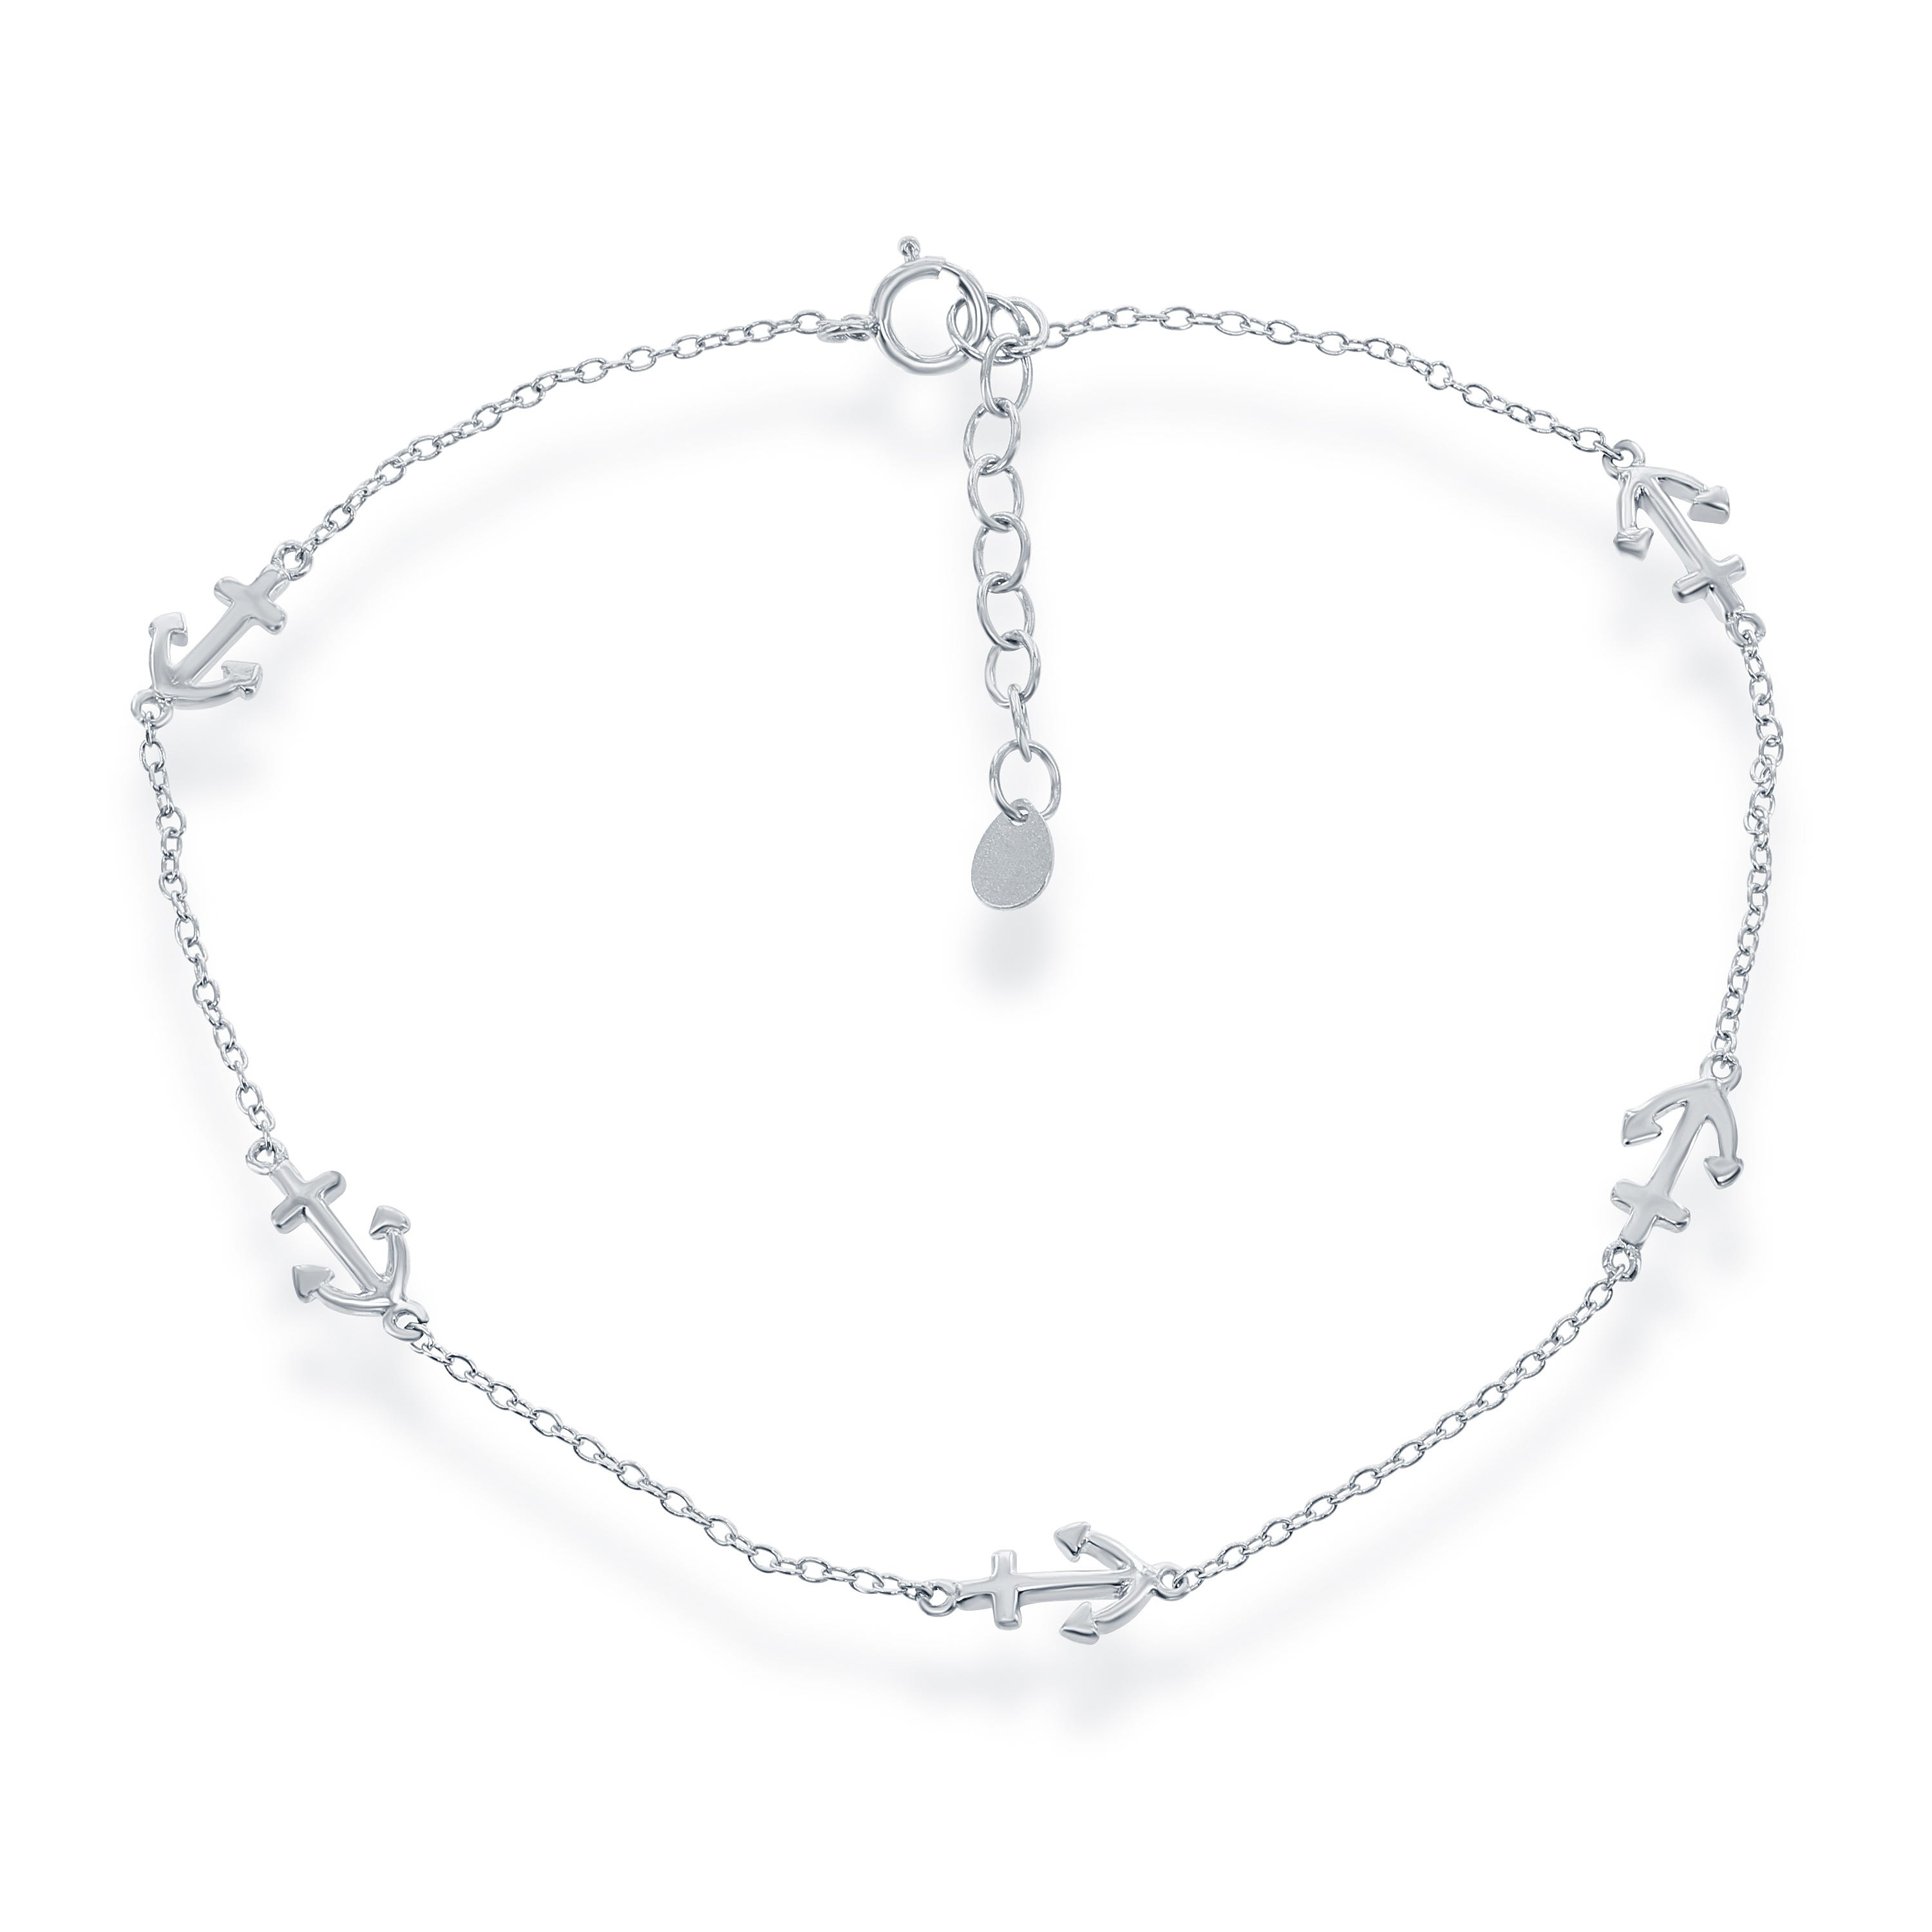 Anchor Fashion Anklet in Sterling Silver